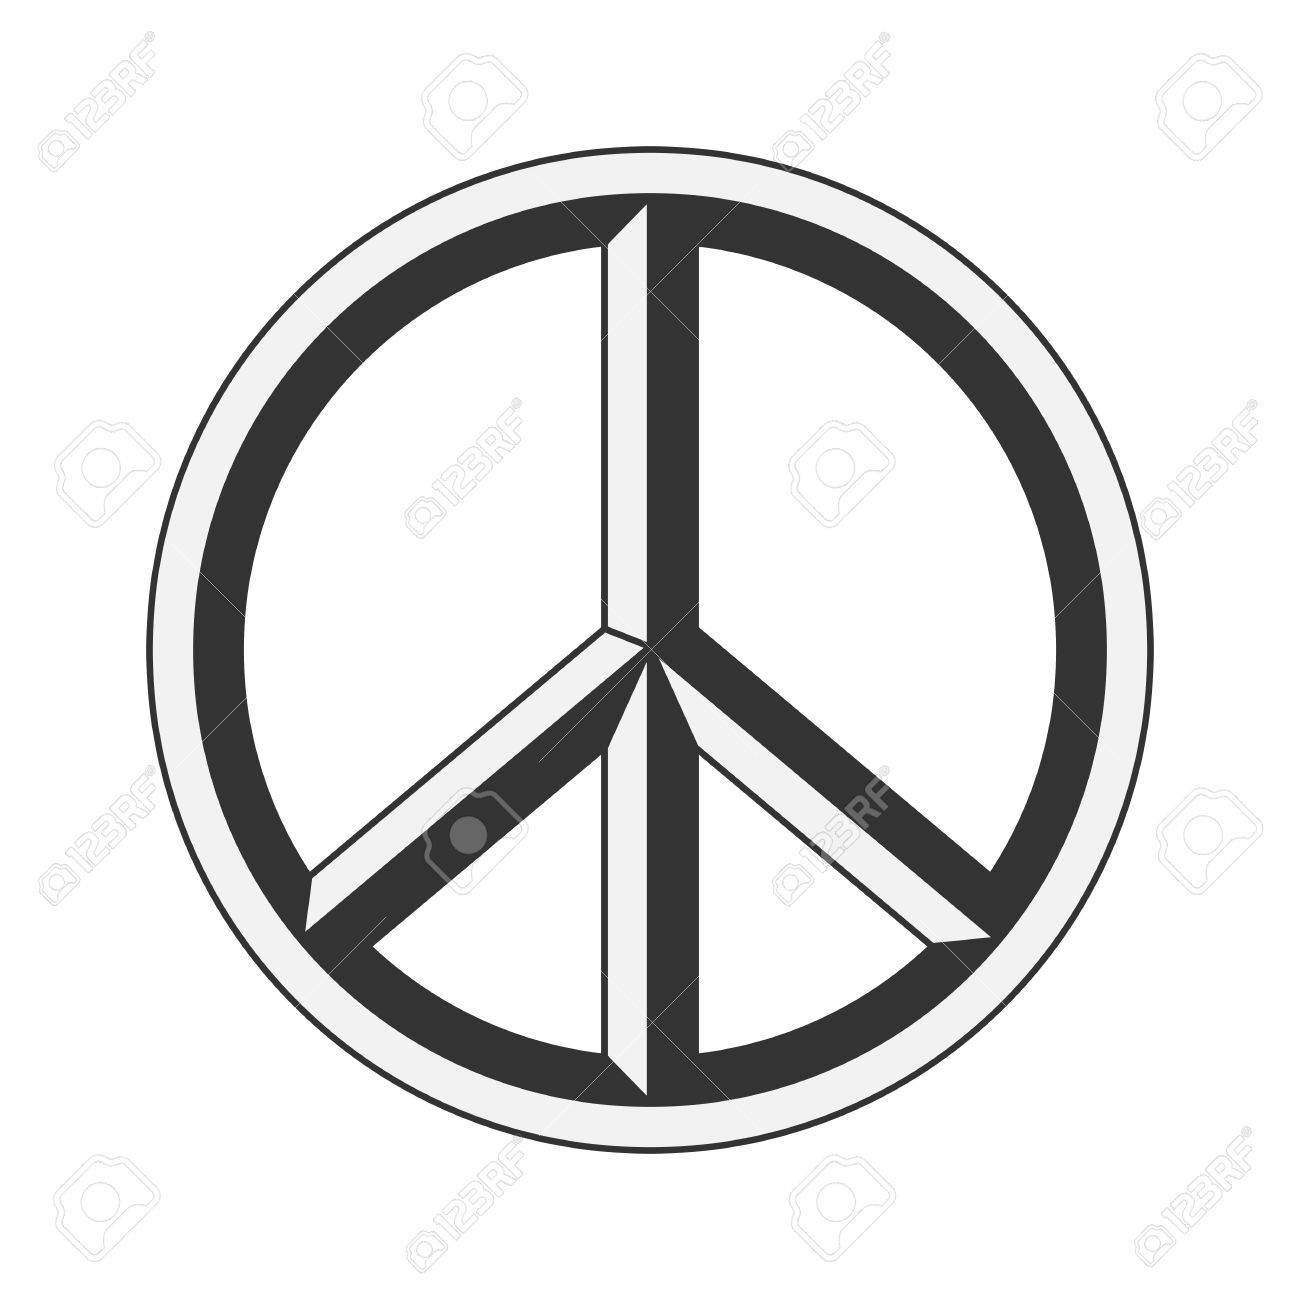 peace sign hippie symbol of peace vector illustration eps 10 rh 123rf com peace sign vector file vector peace sign hands